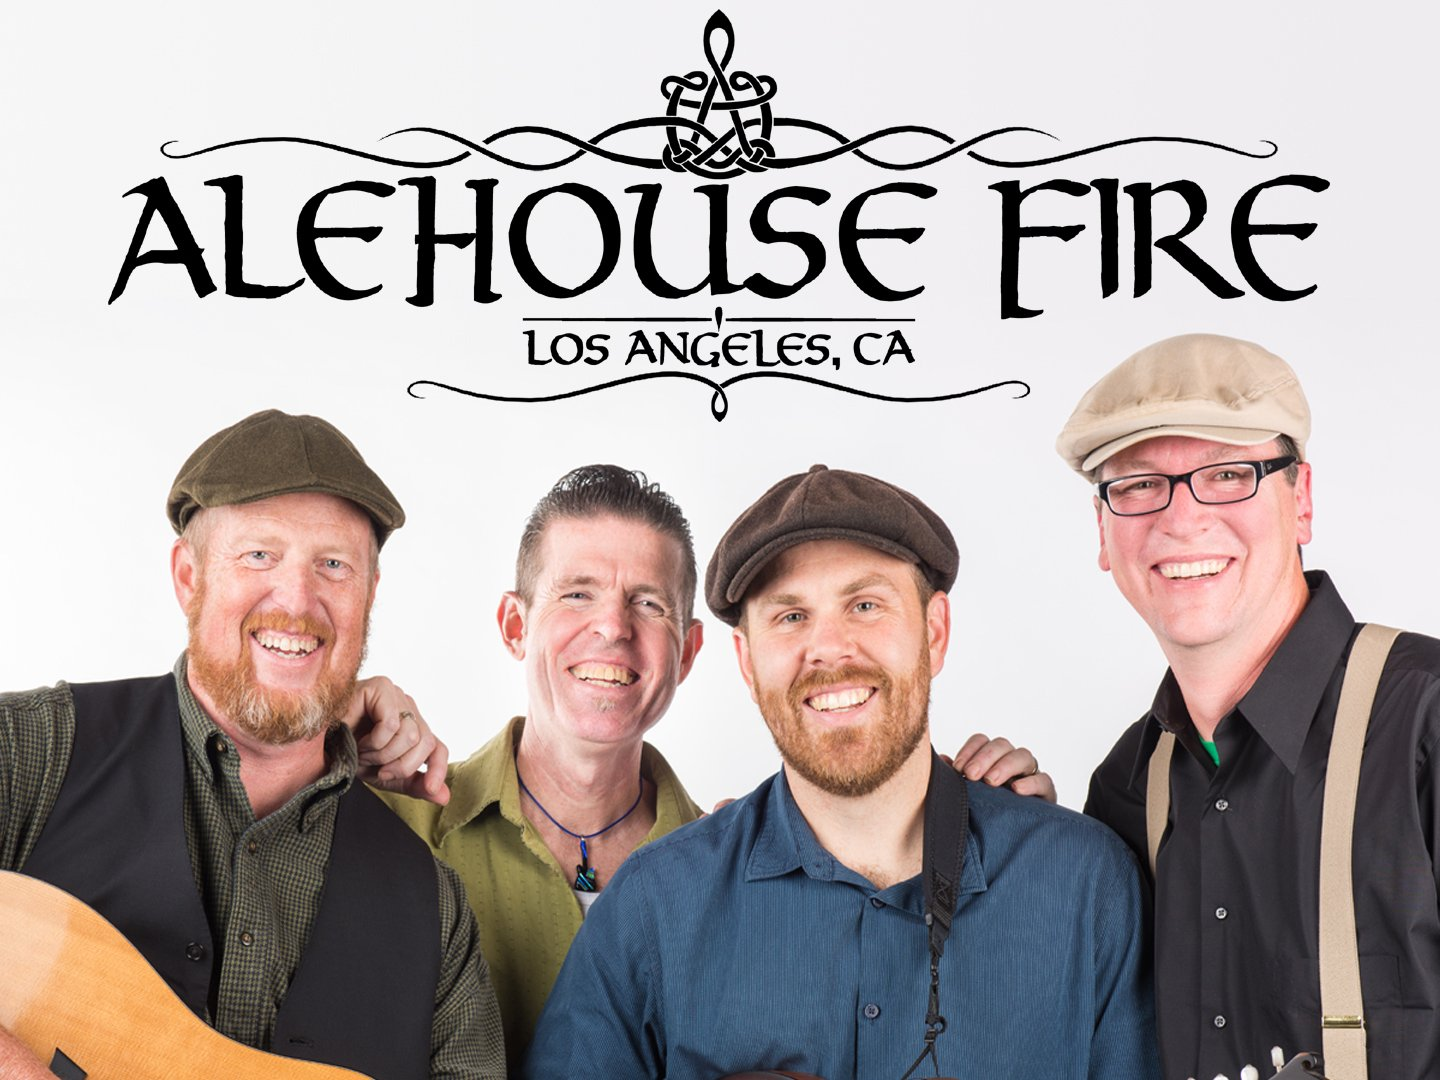 Image for Alehouse Fire